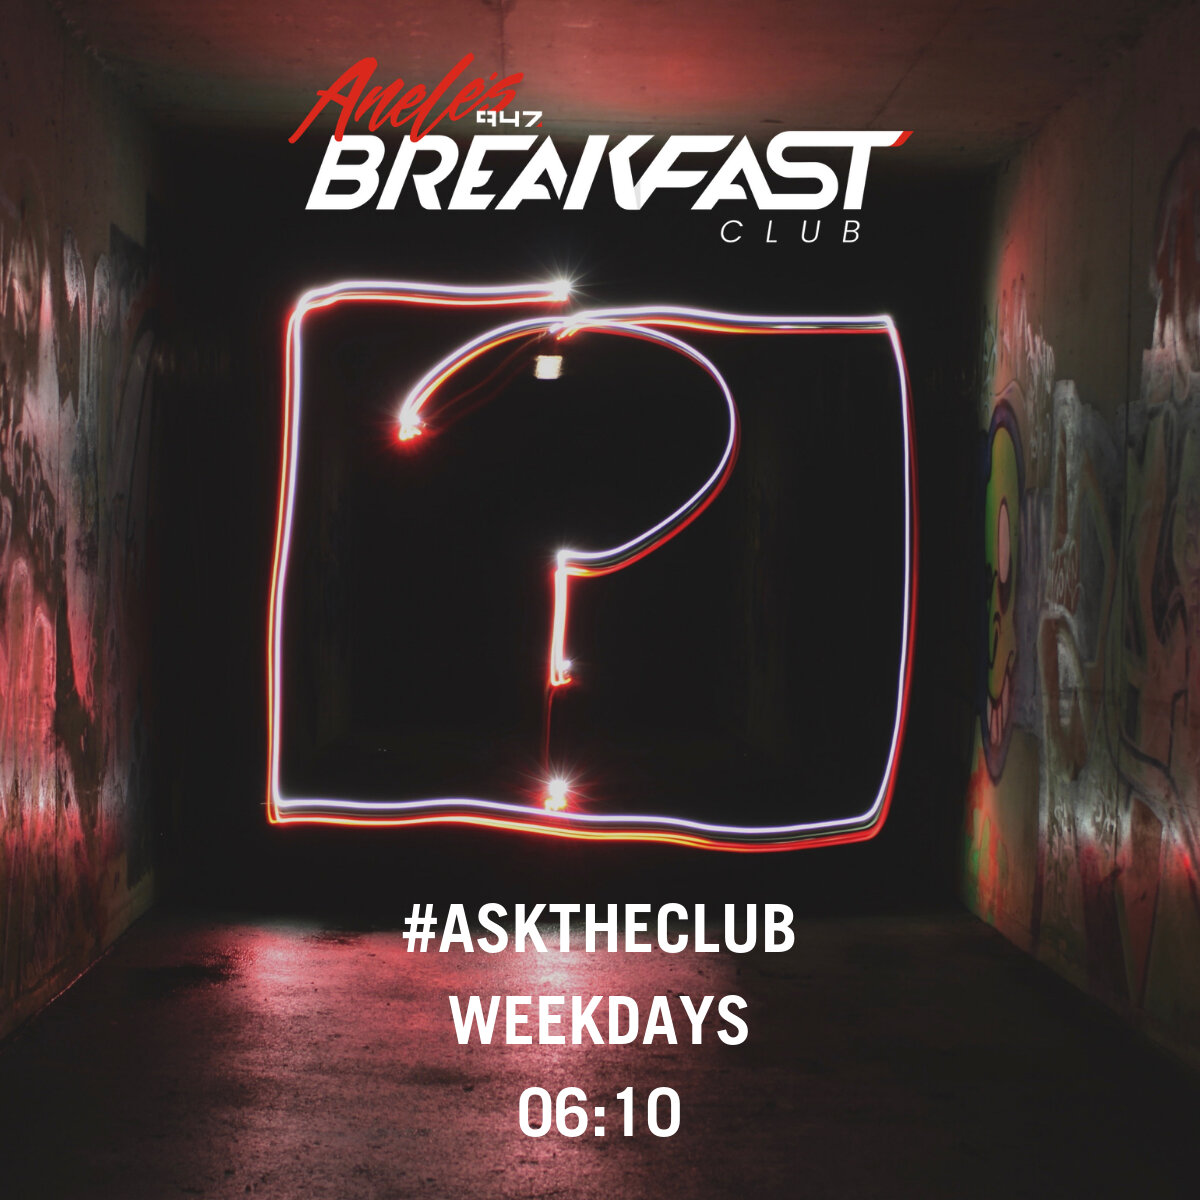 #AskTheClub: The whole Club's favourite song of 2017 and 2018